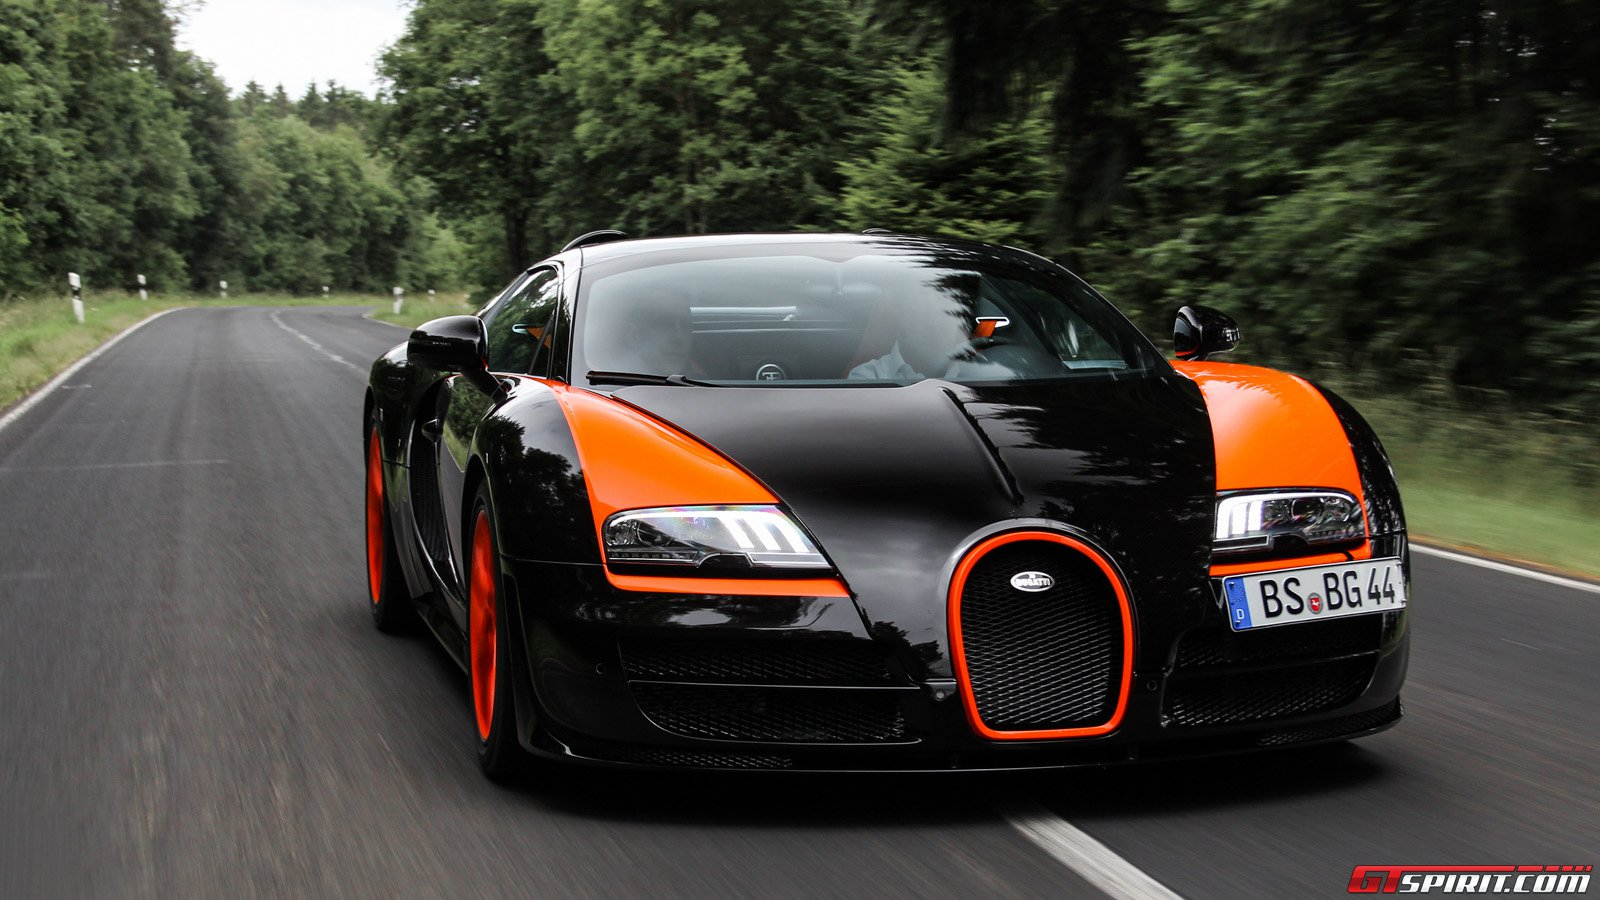 video dj afrojack drives bugatti veyron grand sport. Black Bedroom Furniture Sets. Home Design Ideas